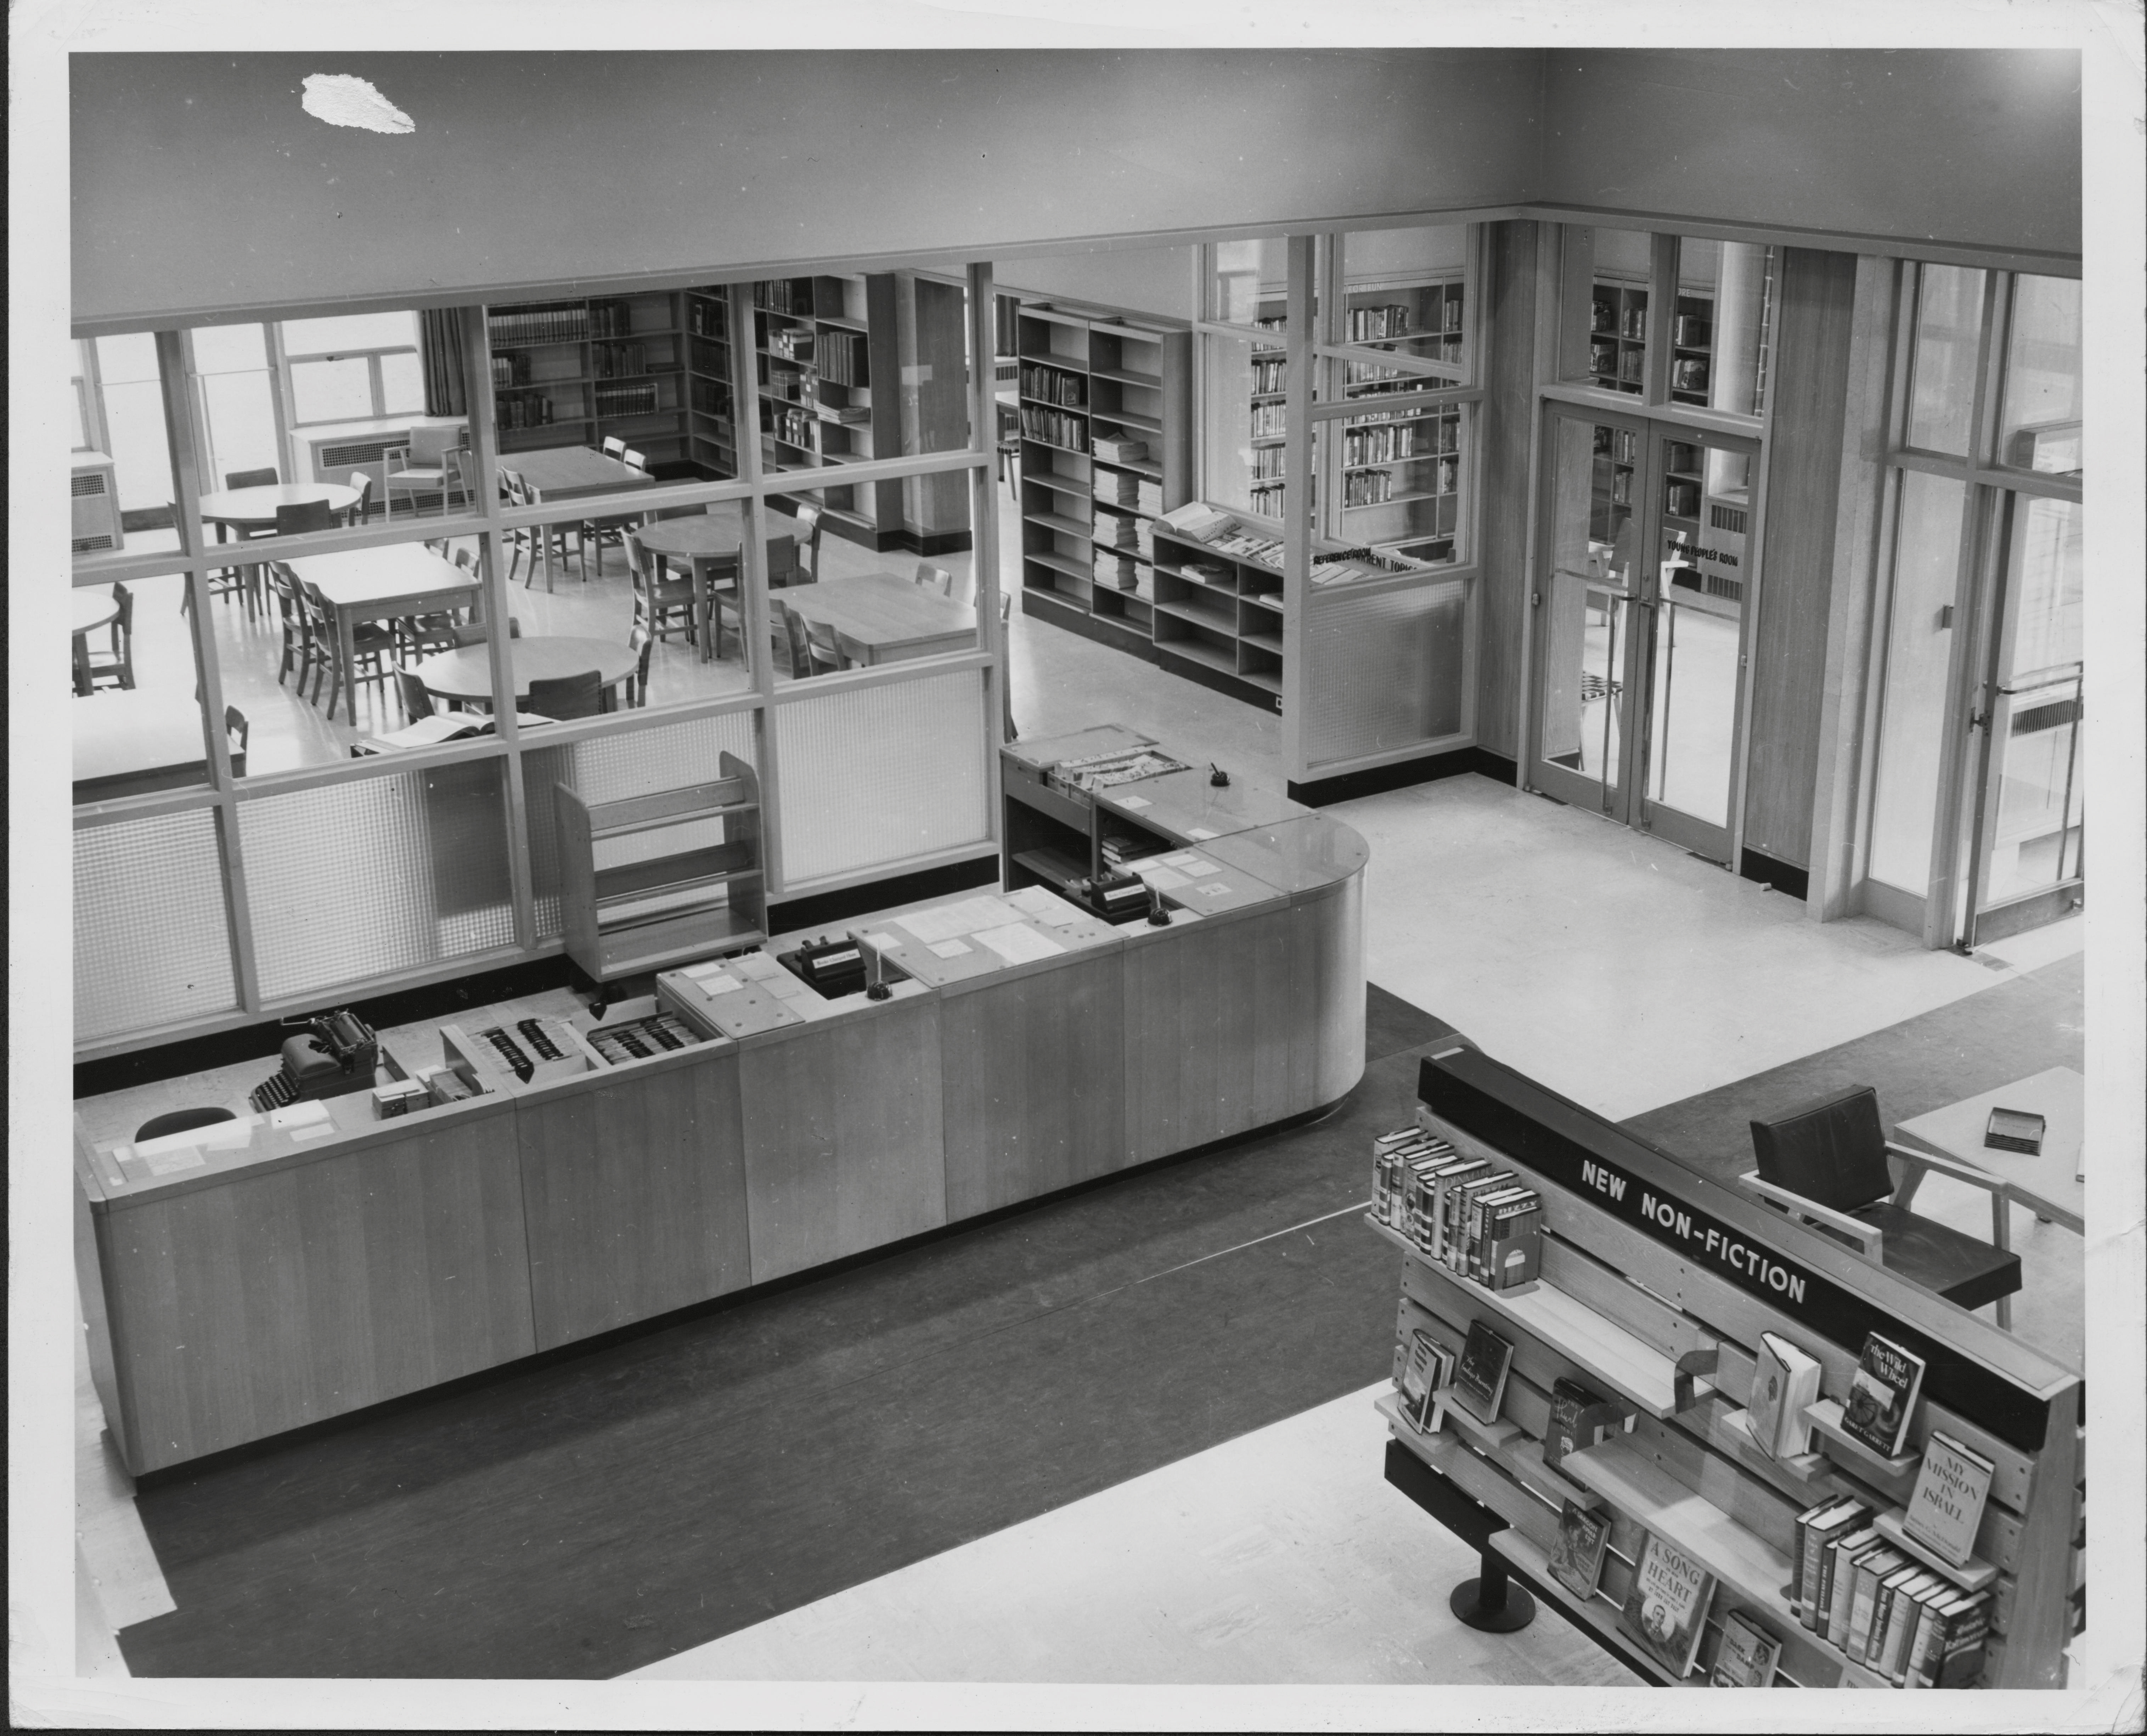 Library-1960-1969-Photo 46